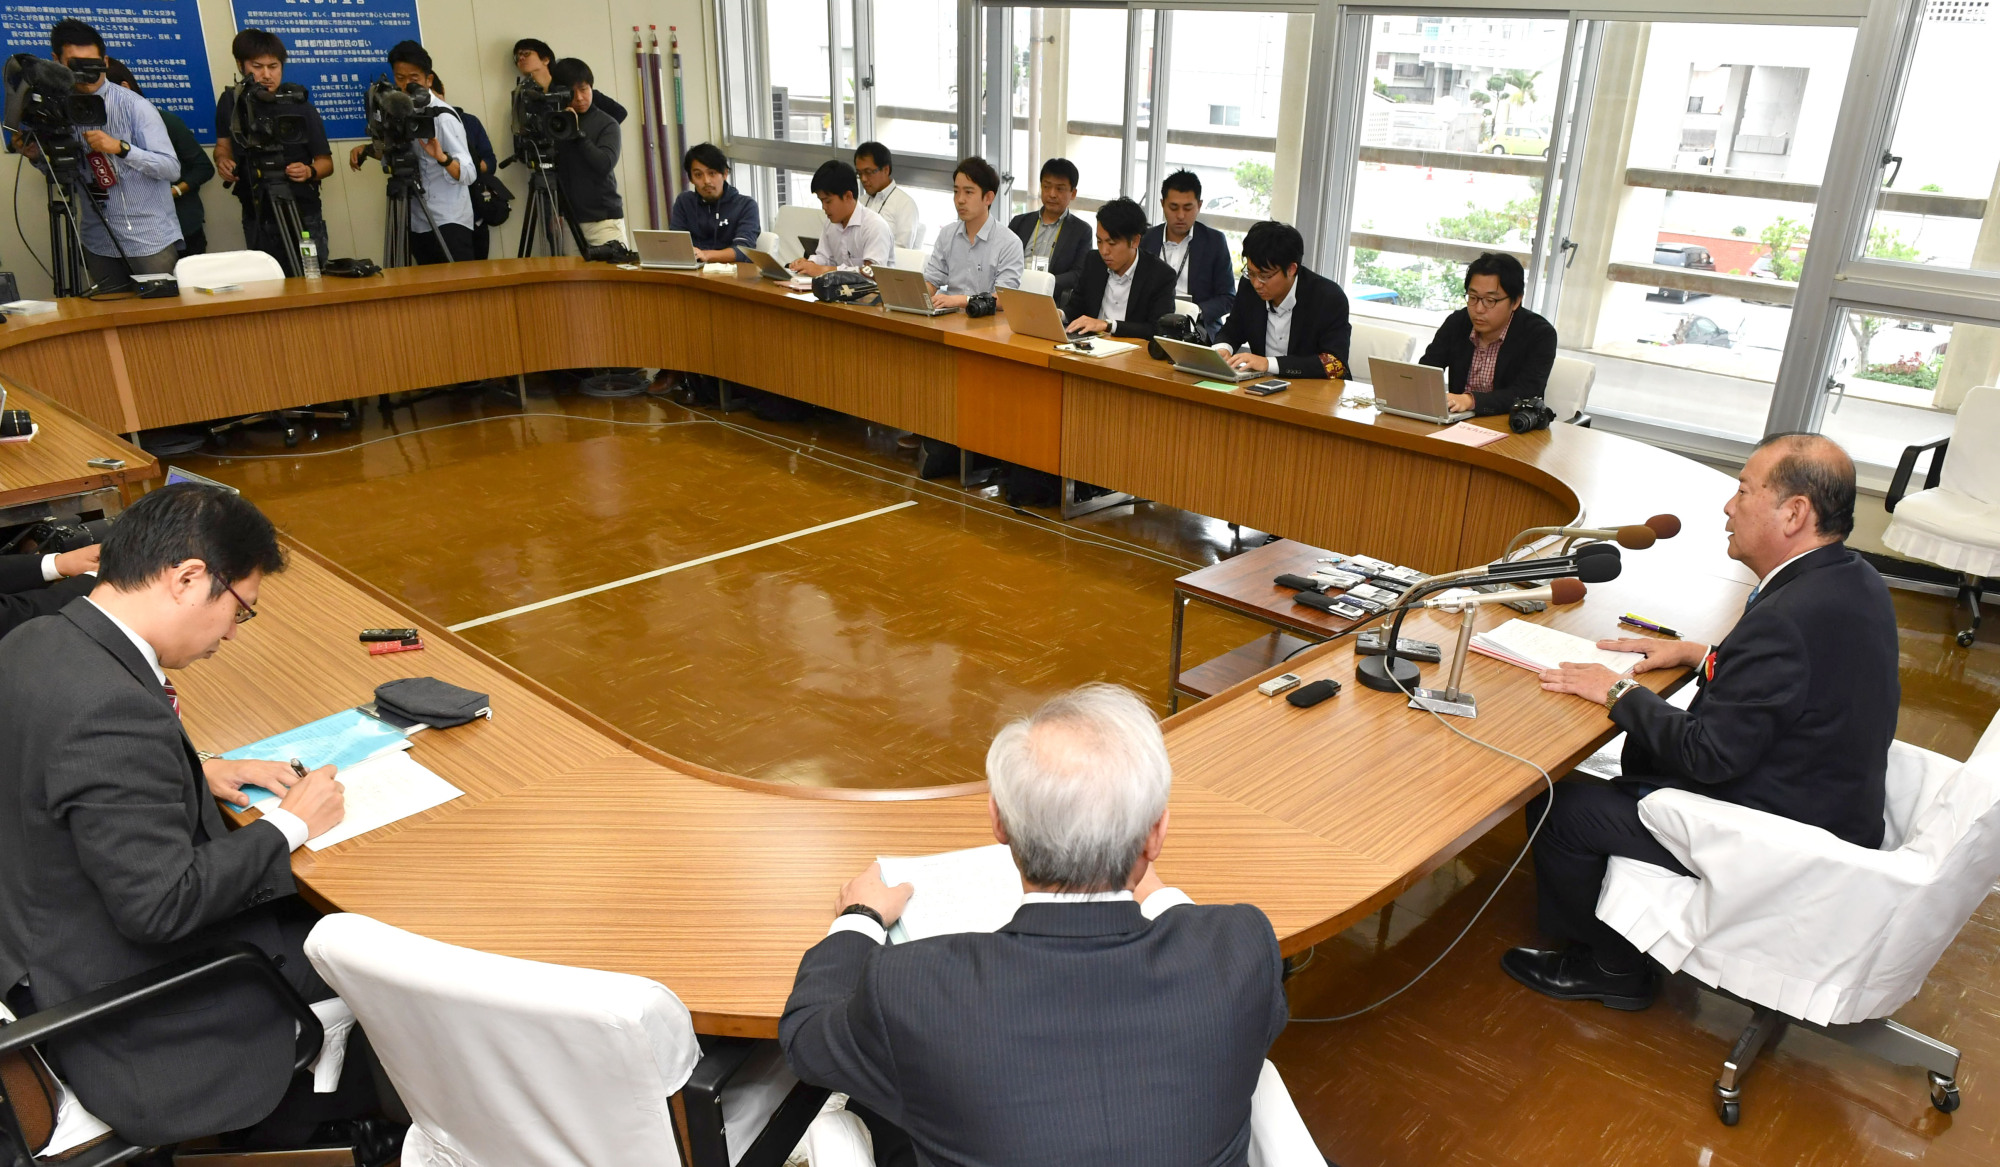 Ginowan Mayor Masanori Matsugawa (far right) announces his decision that a prefectural referendum will not be held in the city, at the Ginowan municipal office on Dec. 25. | THE OKINAWA TIMES